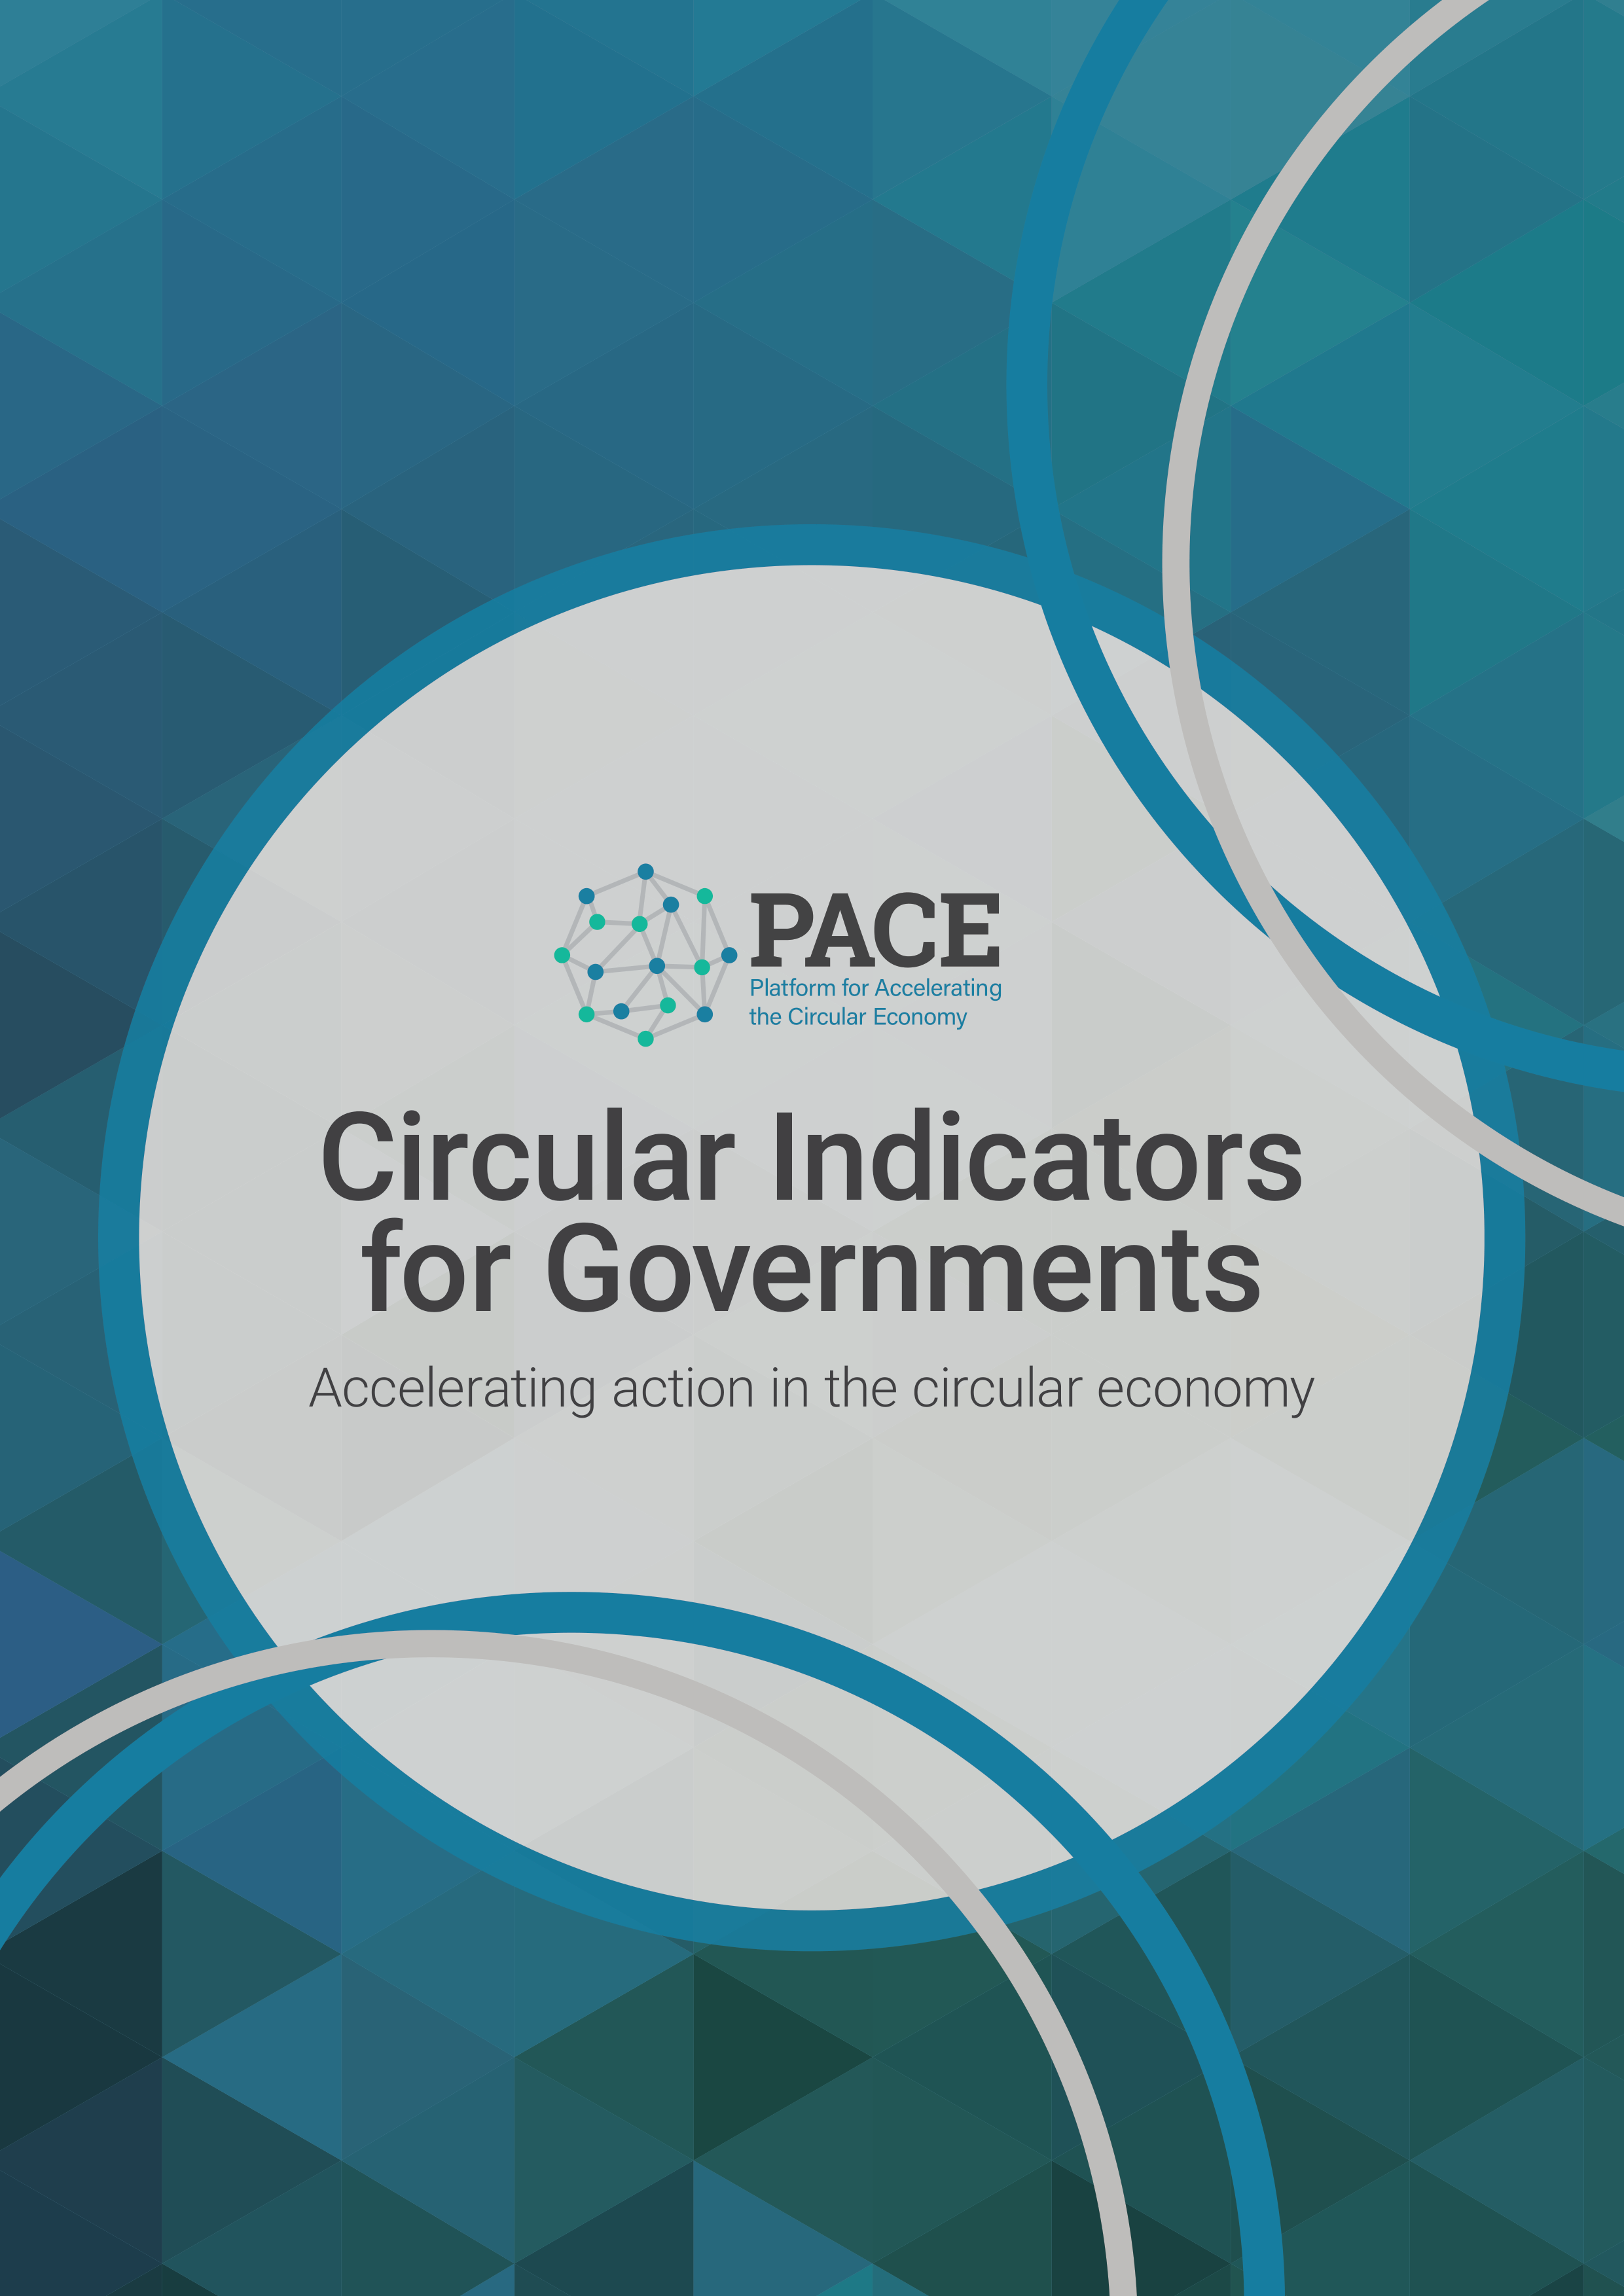 Circular Indicators for Governments